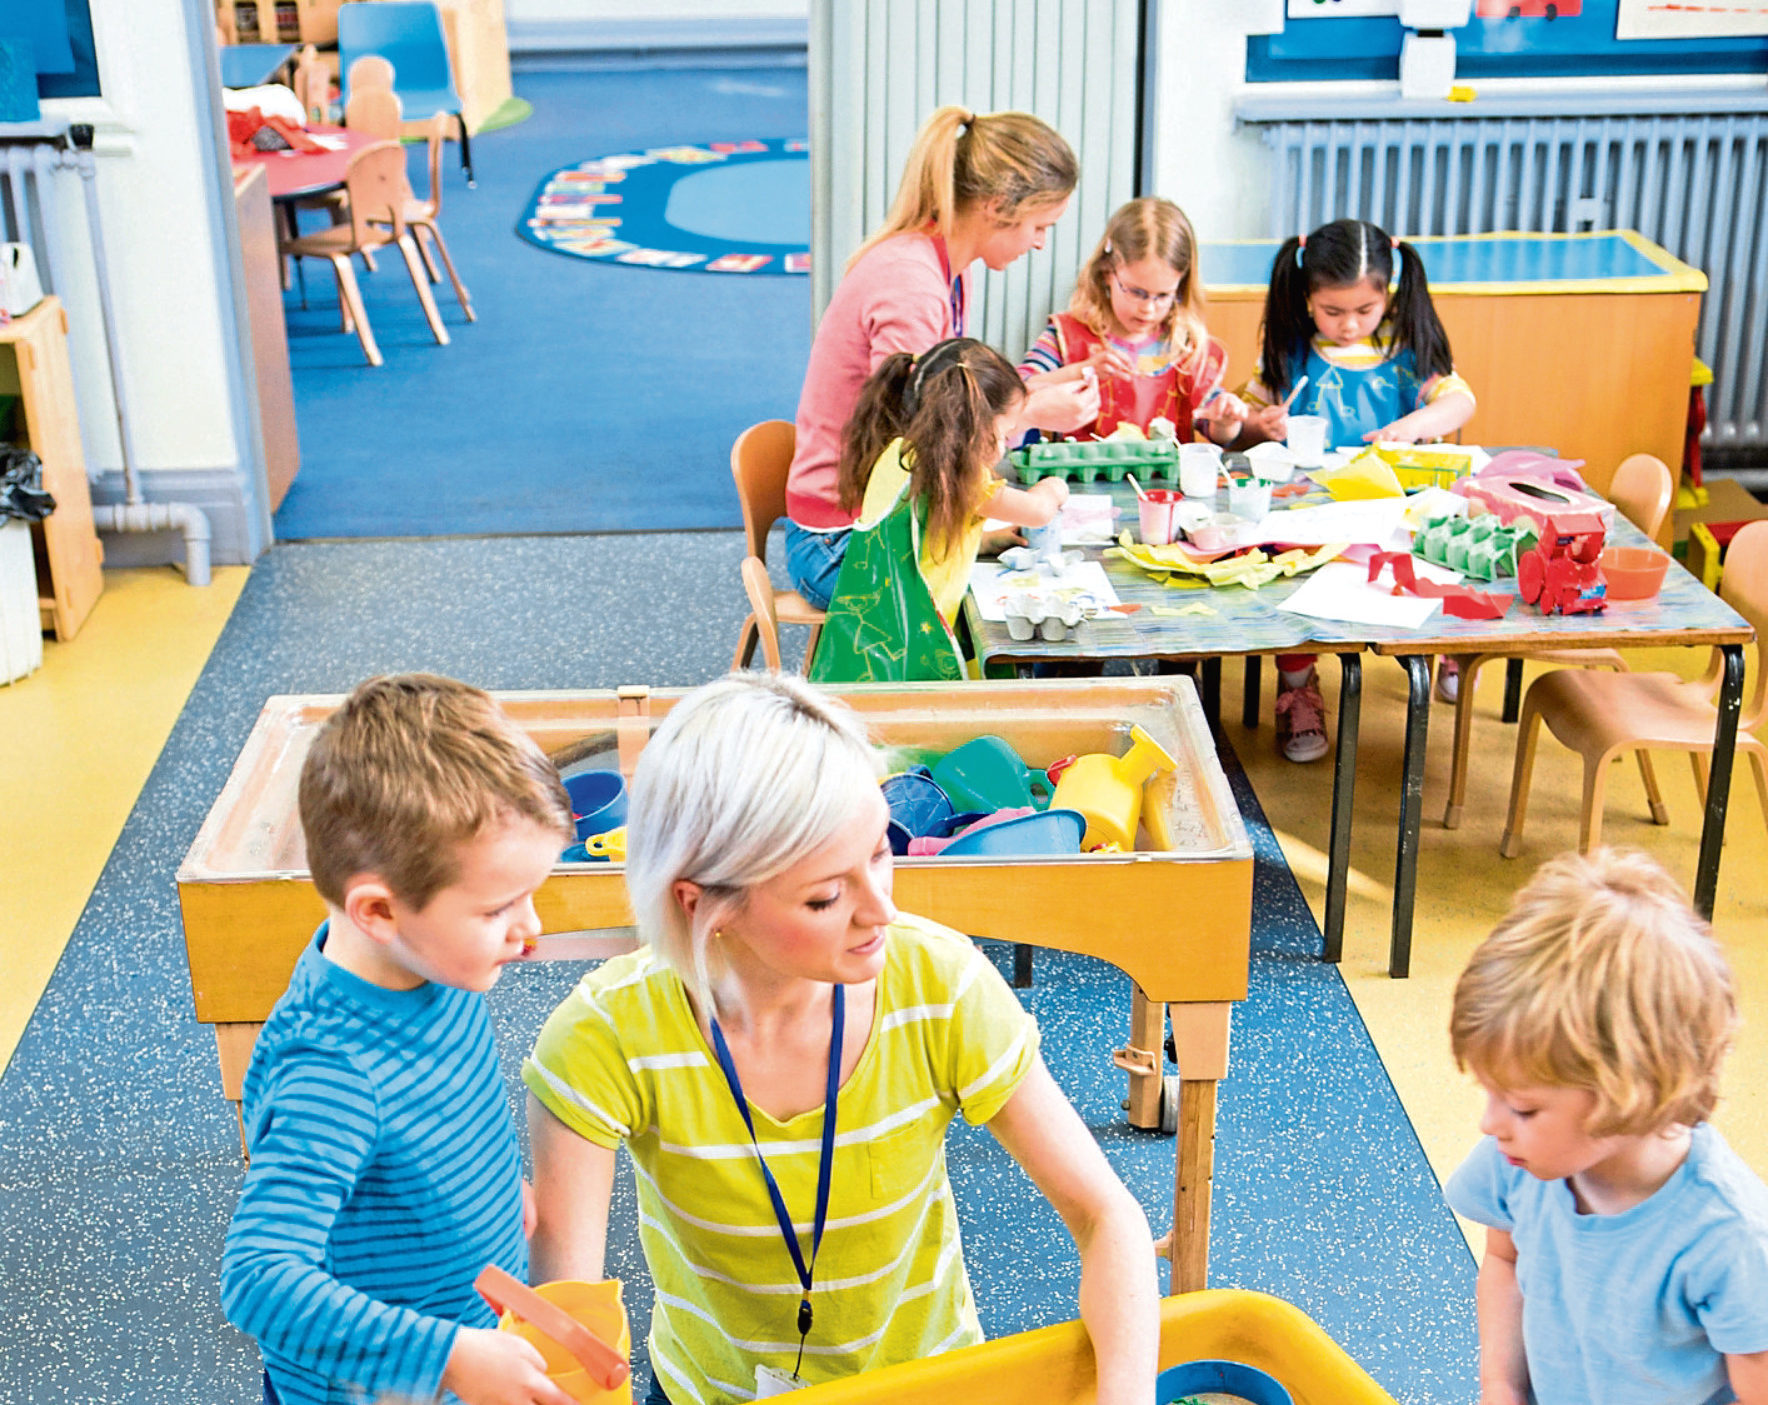 The city council is trying to meet childcare targets set by the government